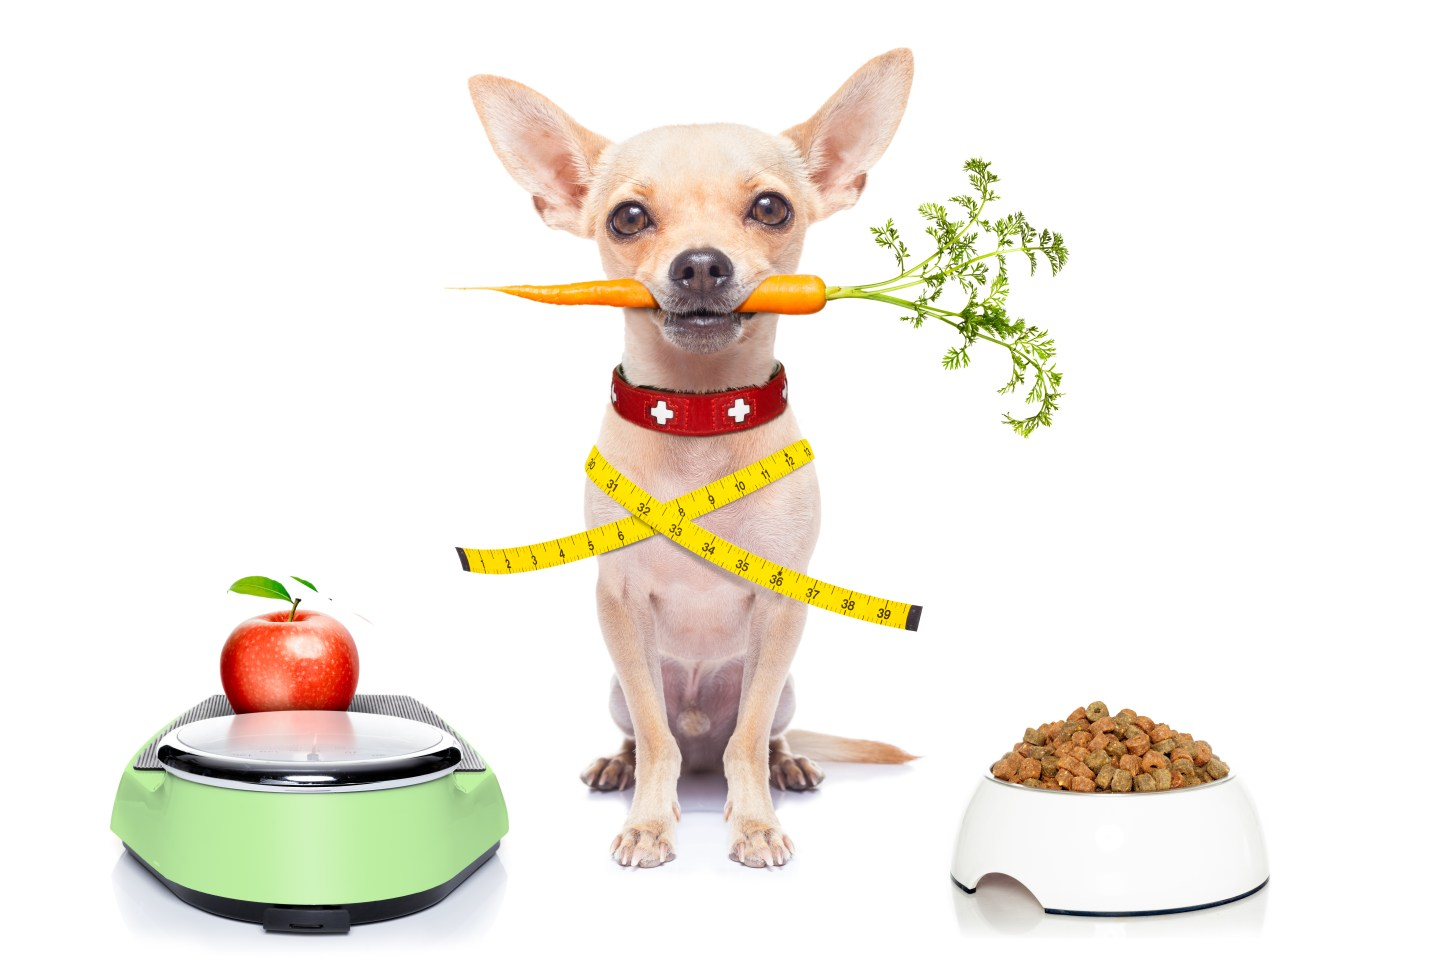 5 Foods that can help prevent canine cancer